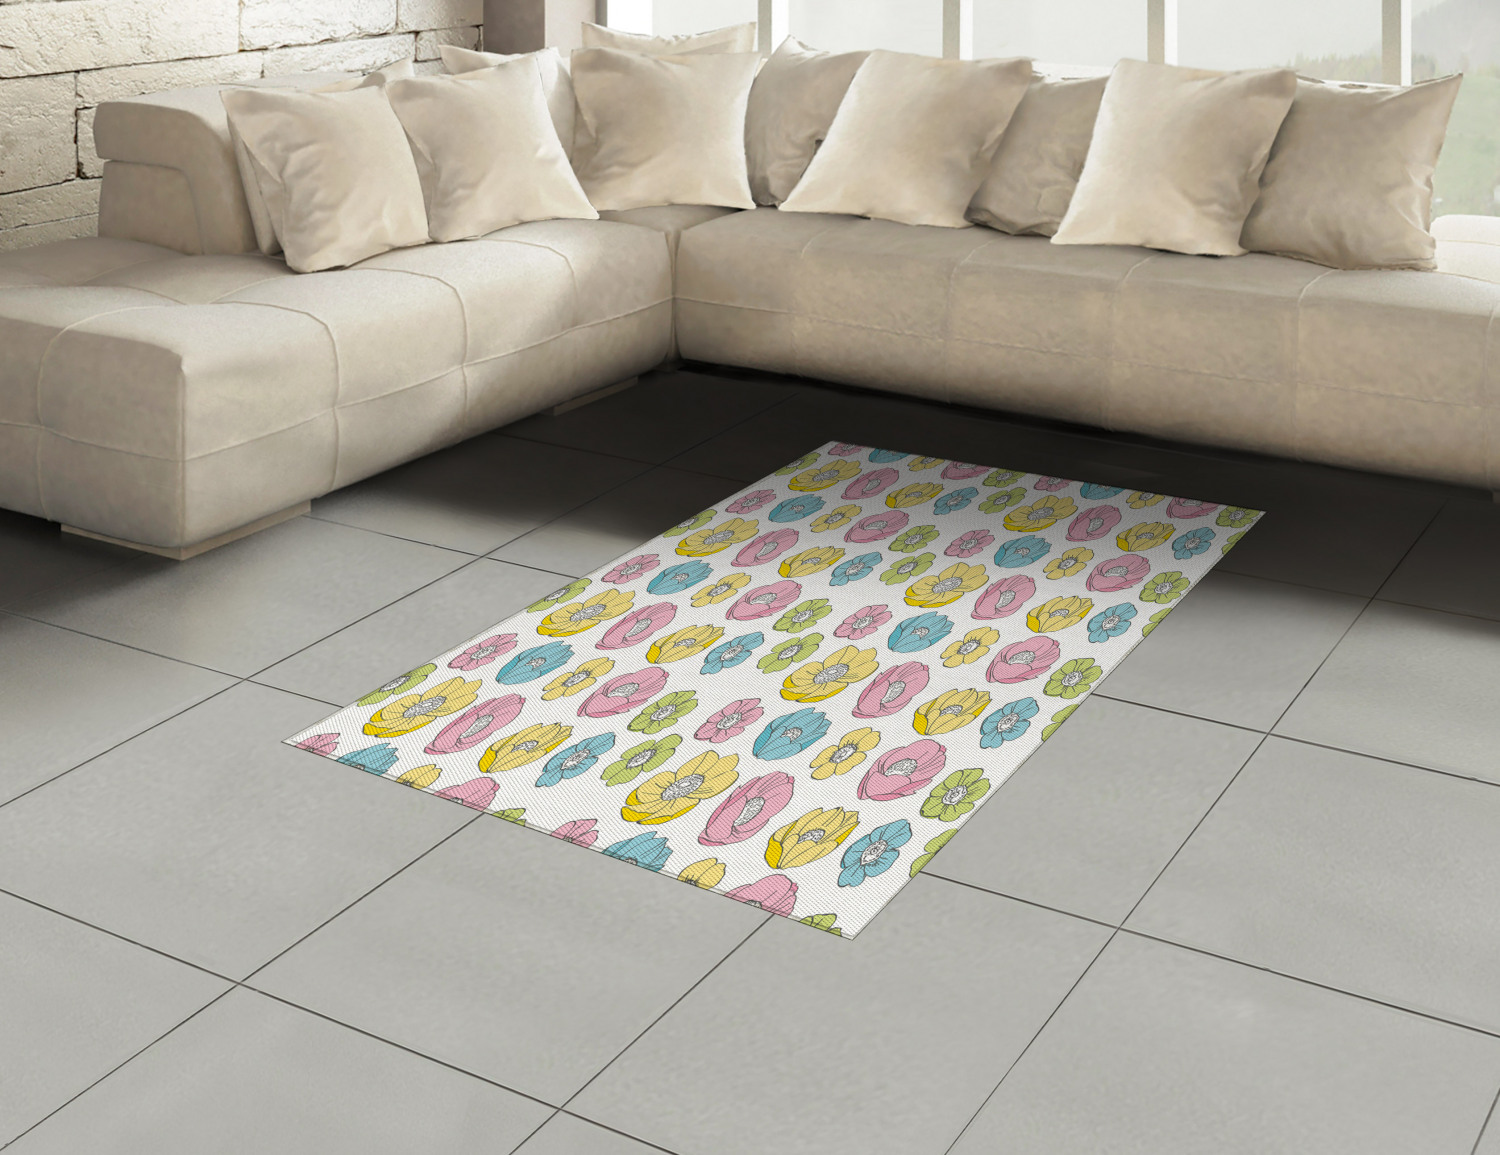 Anemone-Flower-Area-Rug-Decor-Flat-Woven-Accent-Rug-Home-Decor-2-Sizes-Ambesonne thumbnail 12